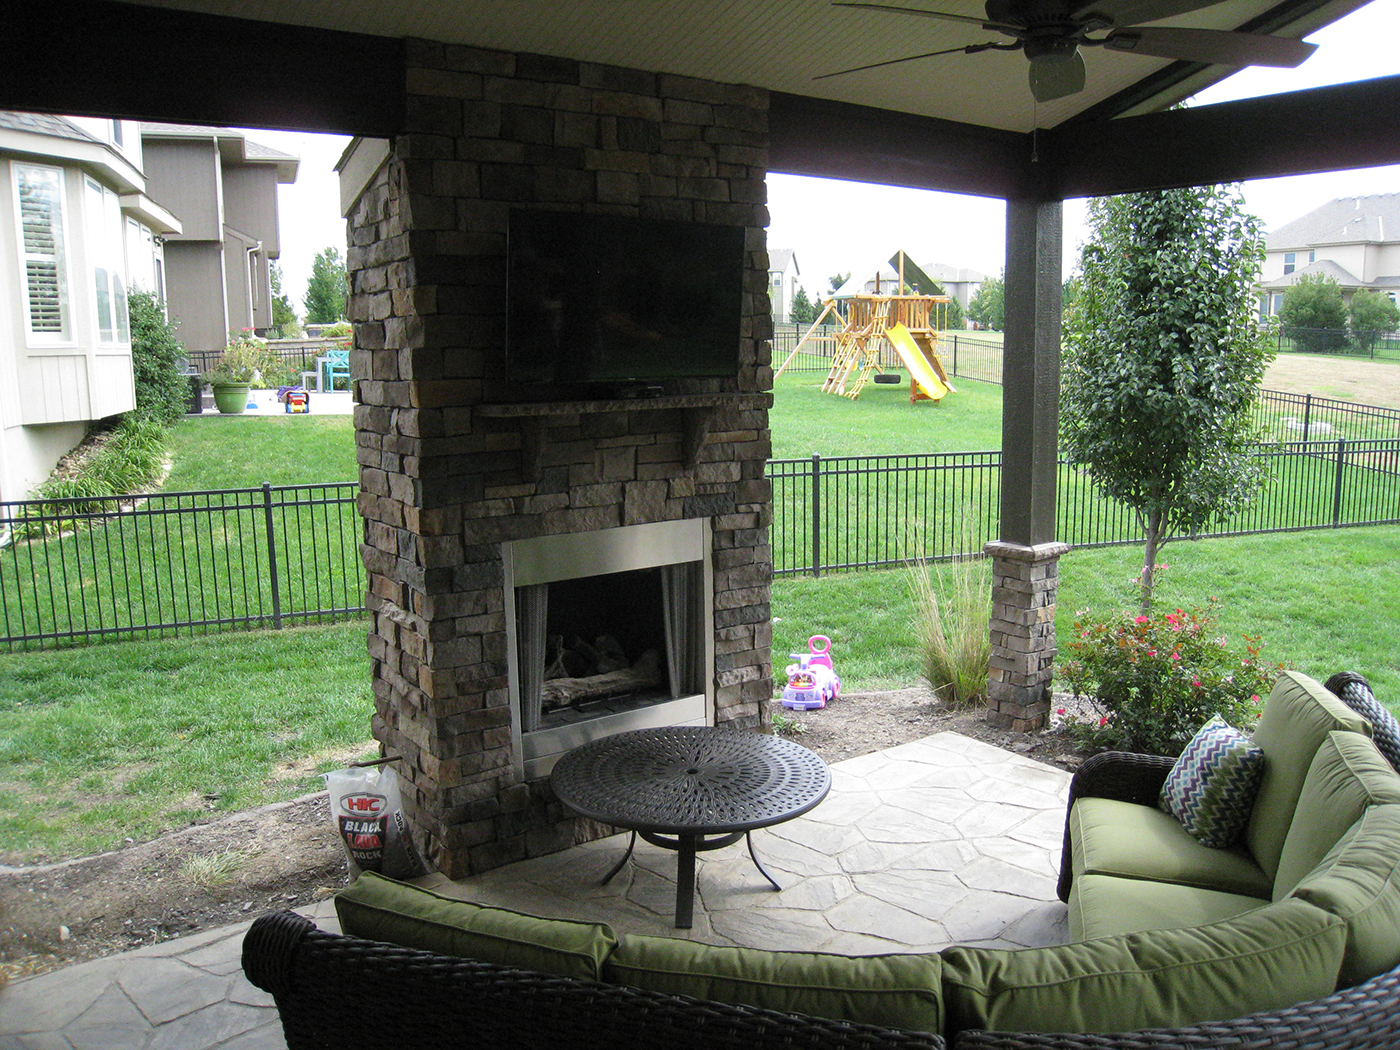 Lehrer Fireplace and Patio Beautiful Outdoor Patio with Fireplace Charming Fireplace